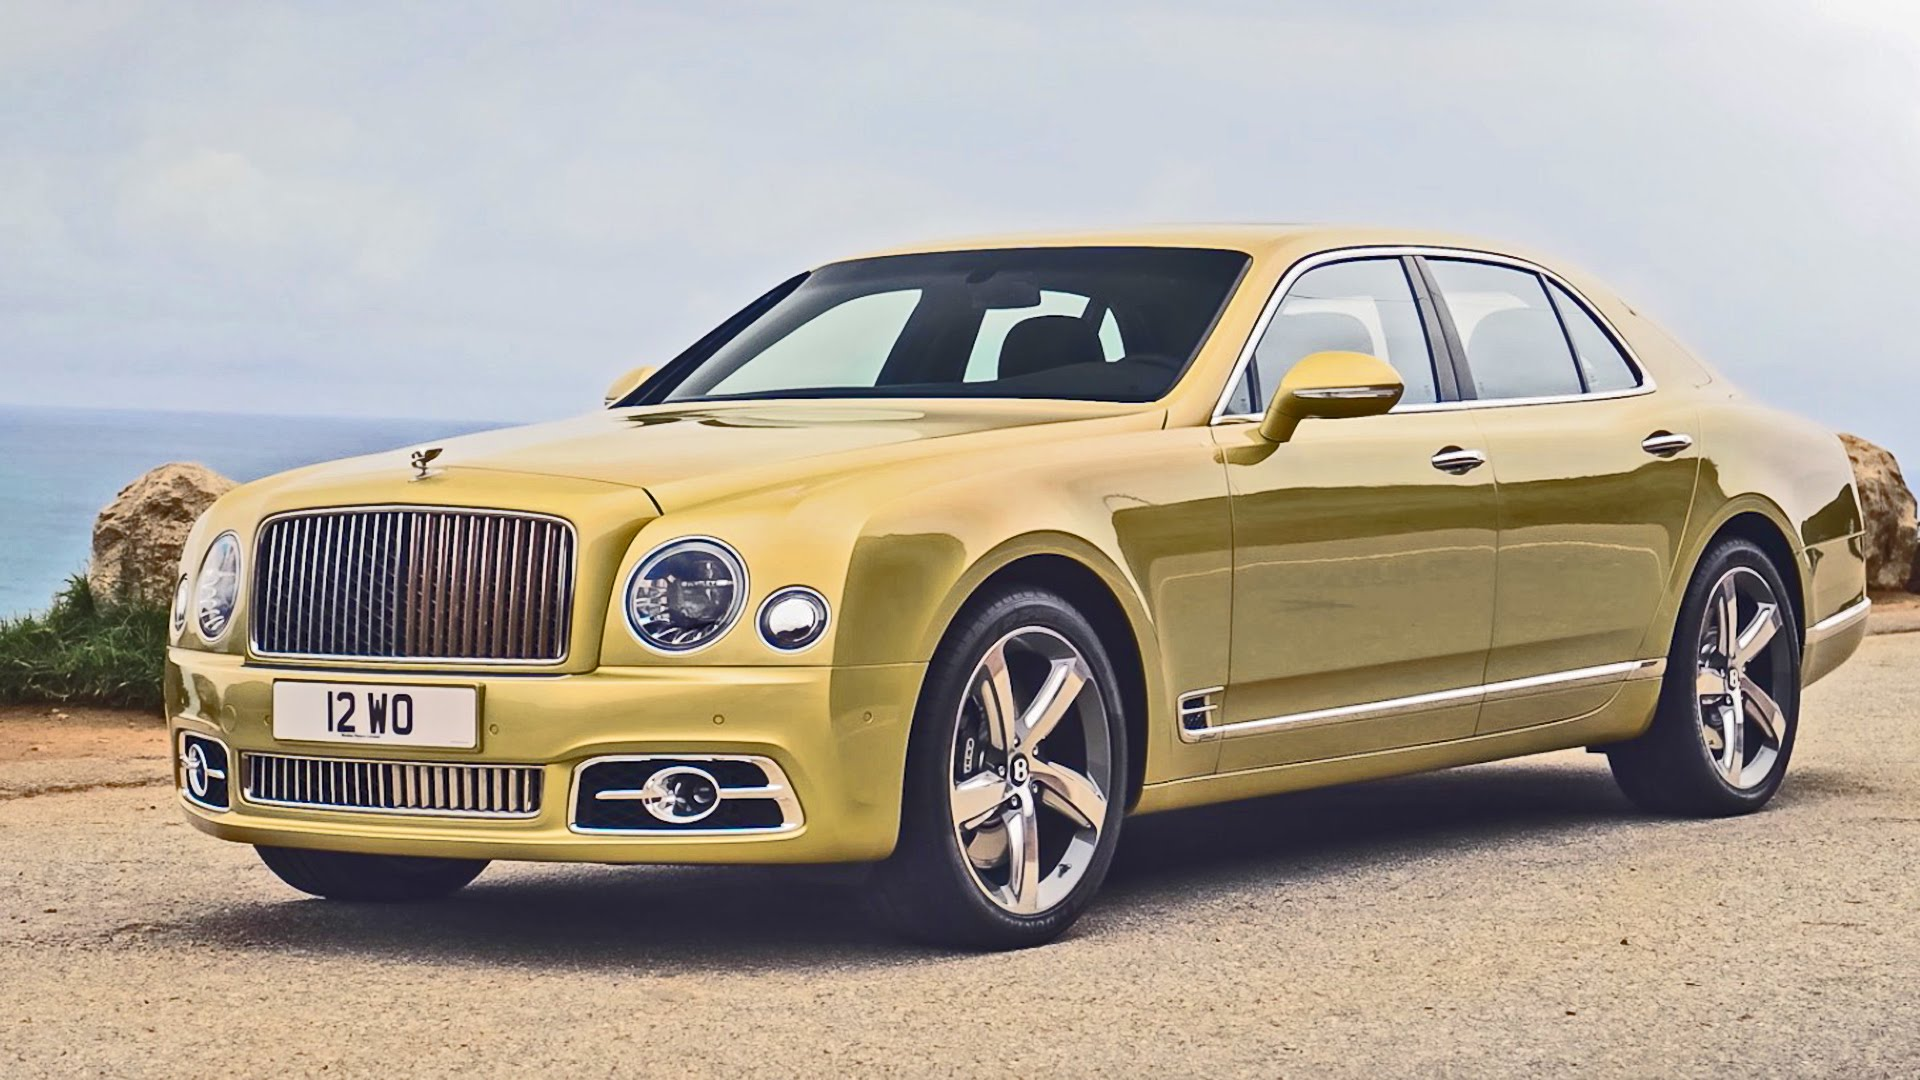 Bentley Mulsanne Specifications, Price, Mileage, Pics, Review